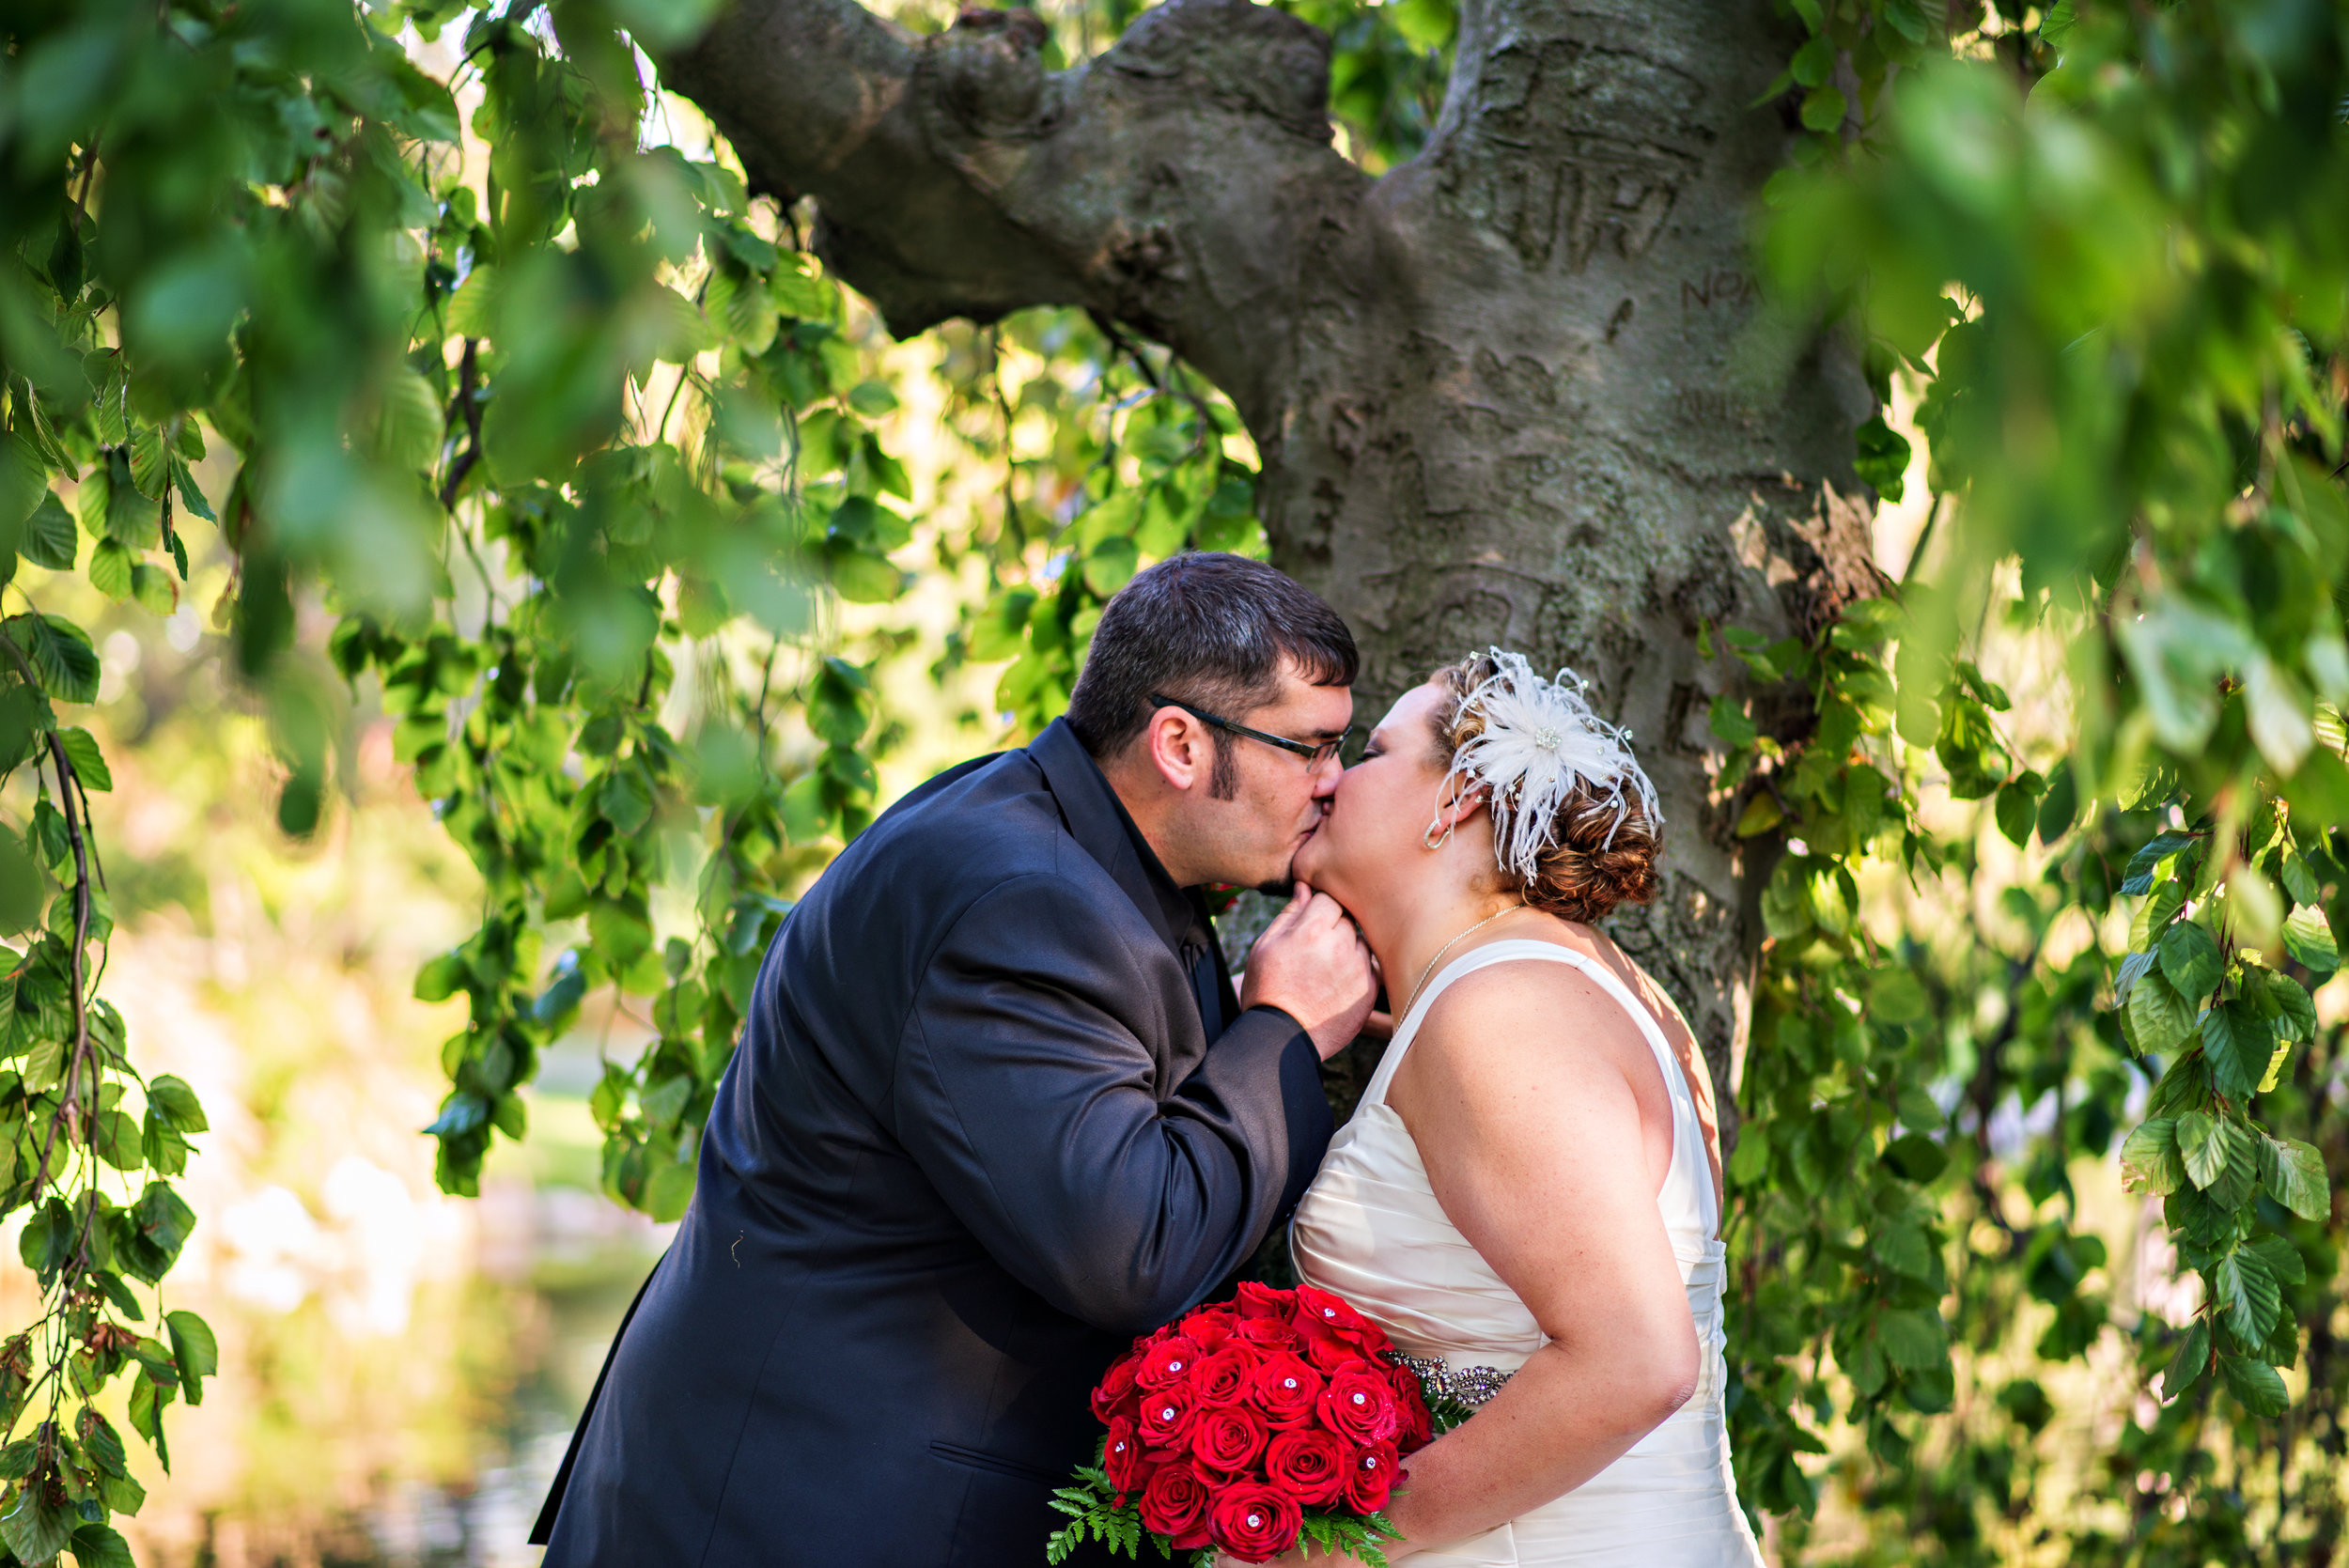 hillsdale_wedding_photographer_hillsdale_wedding_19.jpg